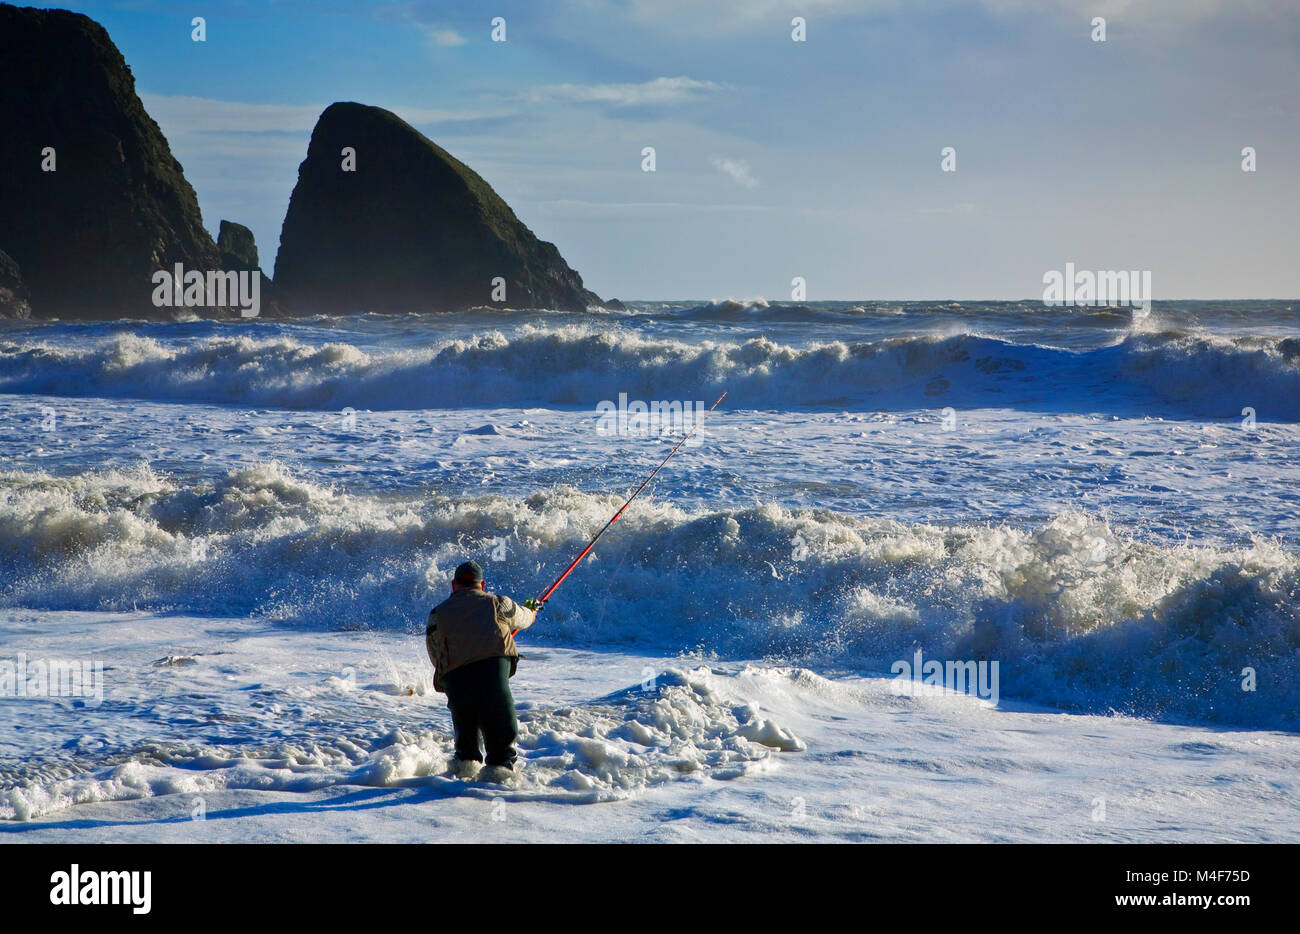 Sea Angling for Bass at Ballydowane Beach, The Copper Coast, County Waterford, Ireland - Stock Image